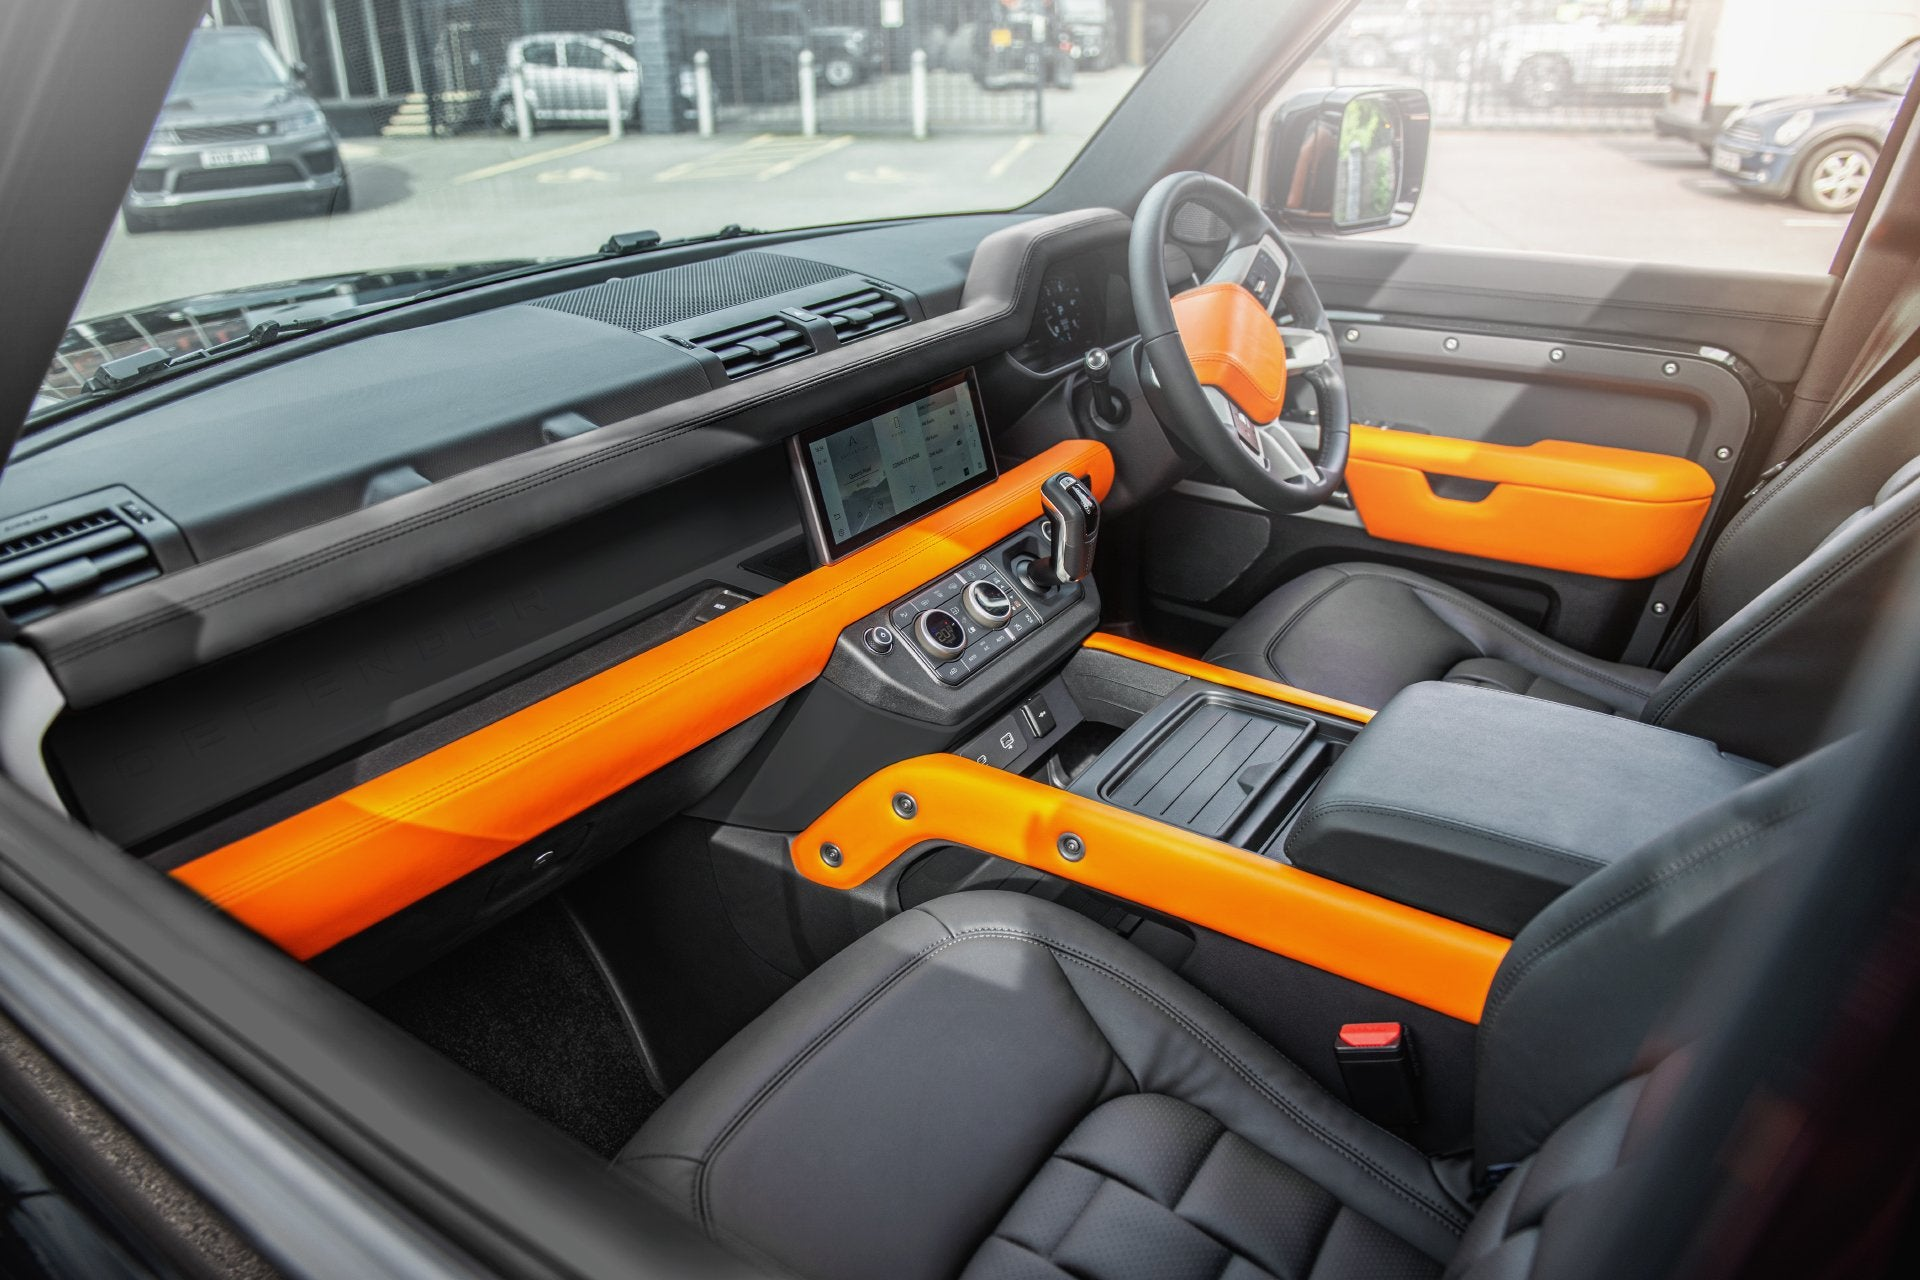 Land Rover Defender 110 (2020-Present) Environment 3: Middle and Lower Interior